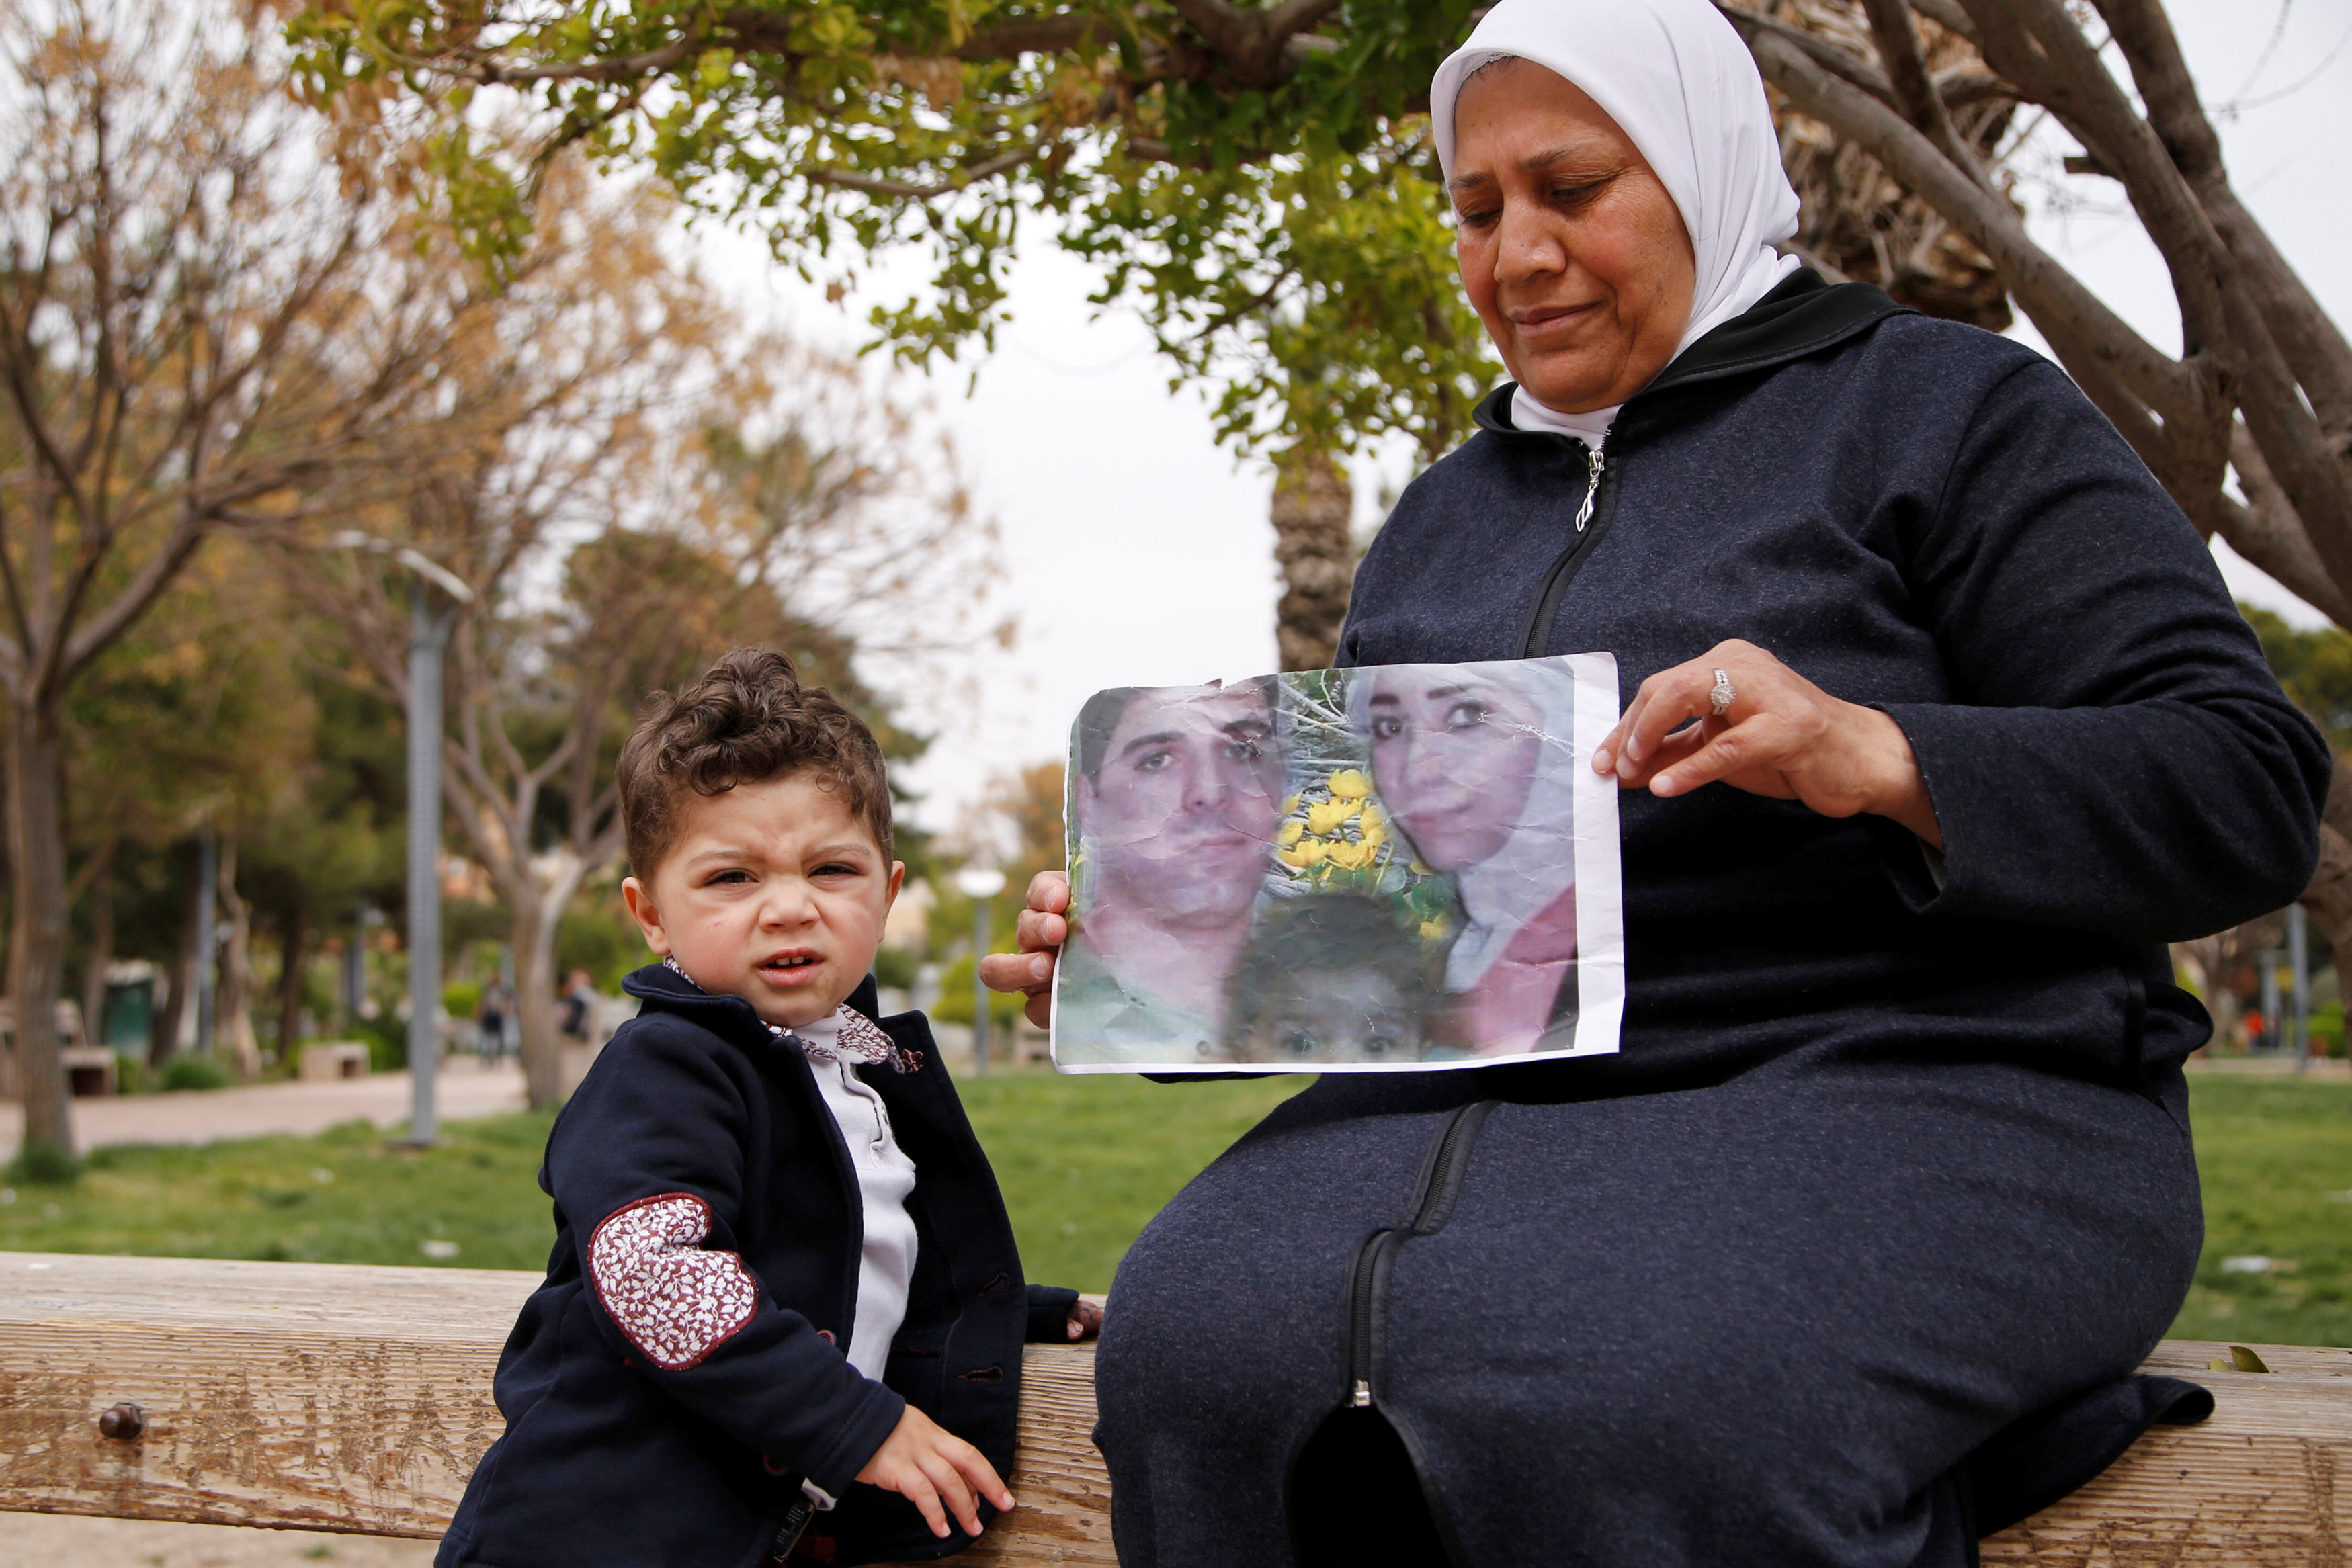 Hajar Saleh poses with her grandson Jaafar as she holds a picture depicting Jaafar's parents, Amina Saleh and her husband Imad Azouz who were killed fleeing Syria's civil war, at a garden in the Damascus district of Mezzeh,